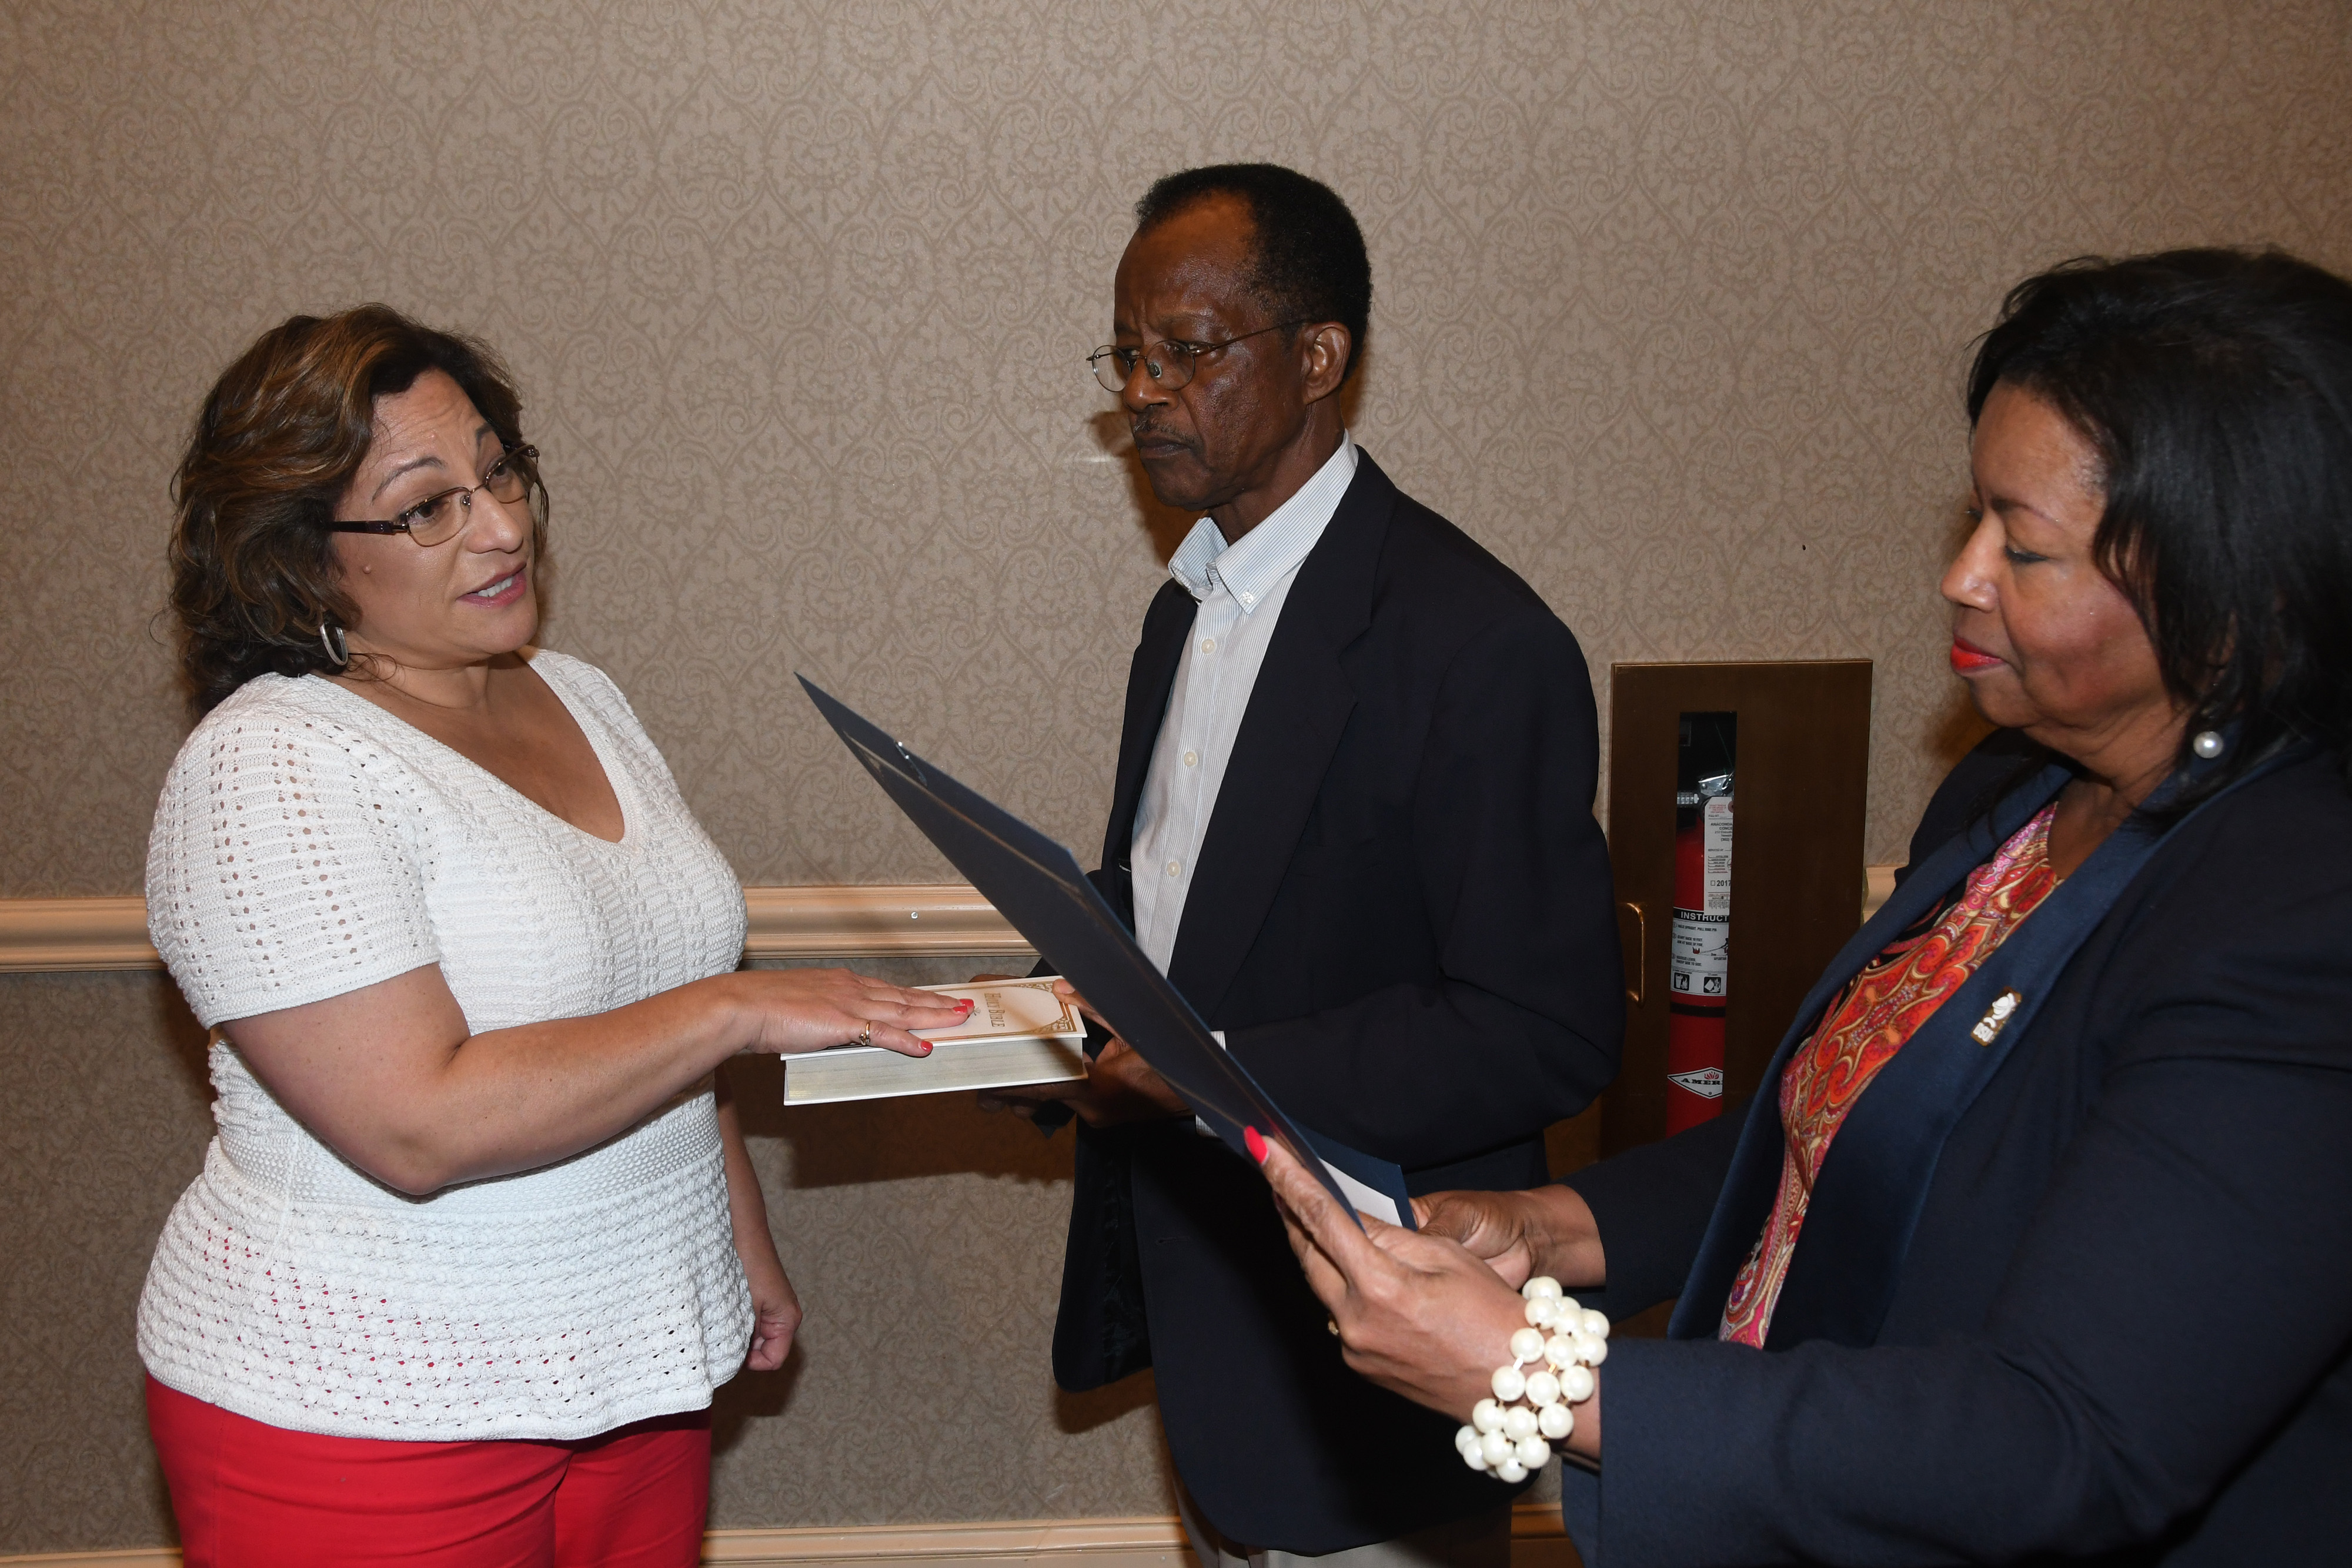 New Board of Trustees member Margie Lopez Waite (l) is sworn in by Board Chair Dr. Devona Williams during the Sept. 20 meeting. Trustee Harold Stafford holds the bible.